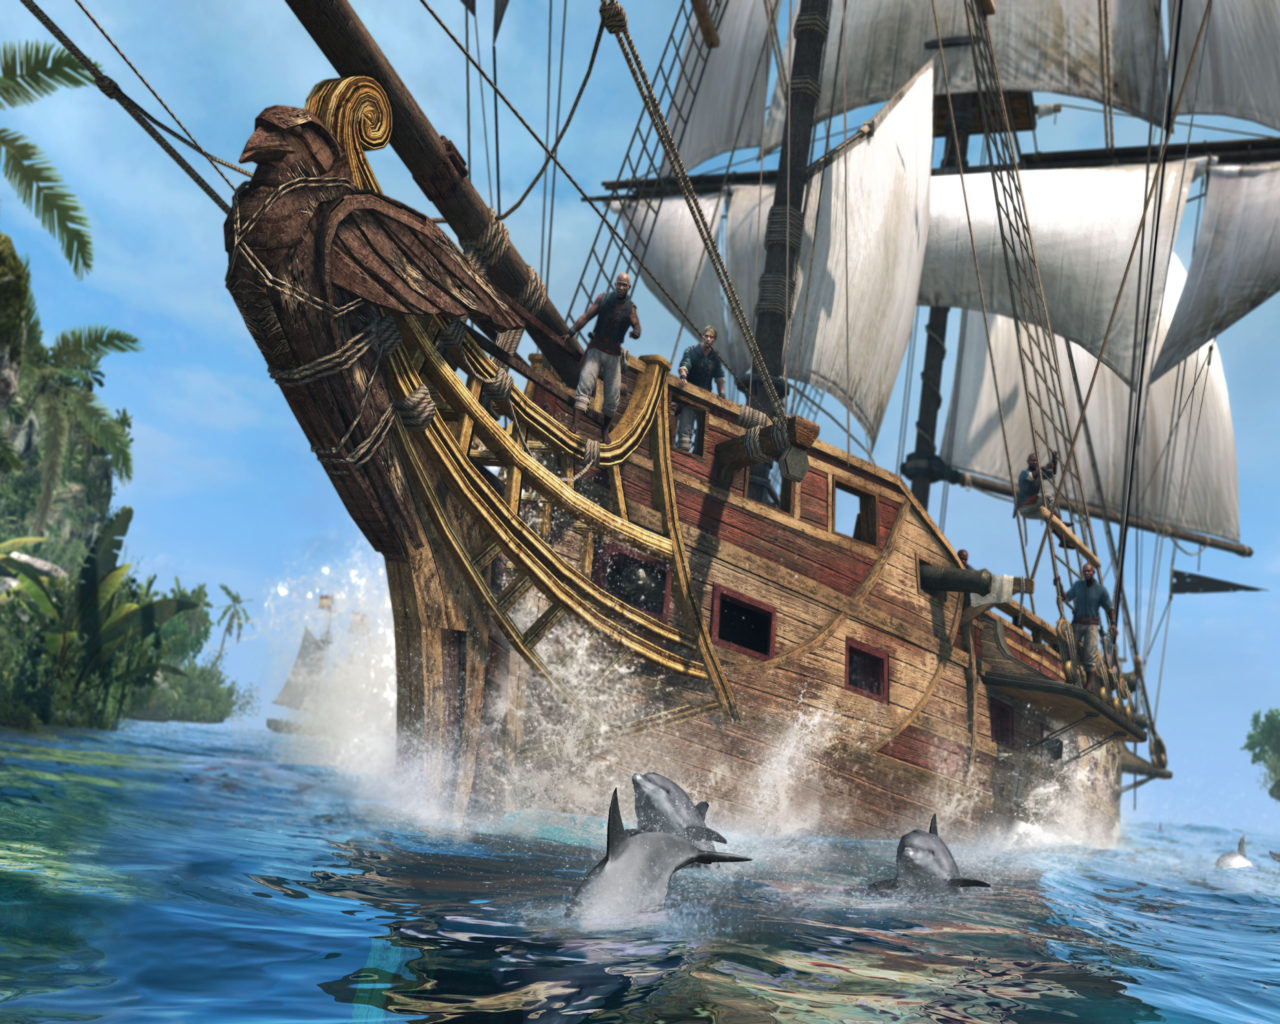 Hd Wallpaper Cars 2015 Pirate Ship Accompanied By Dolphins Hd Wallpaper